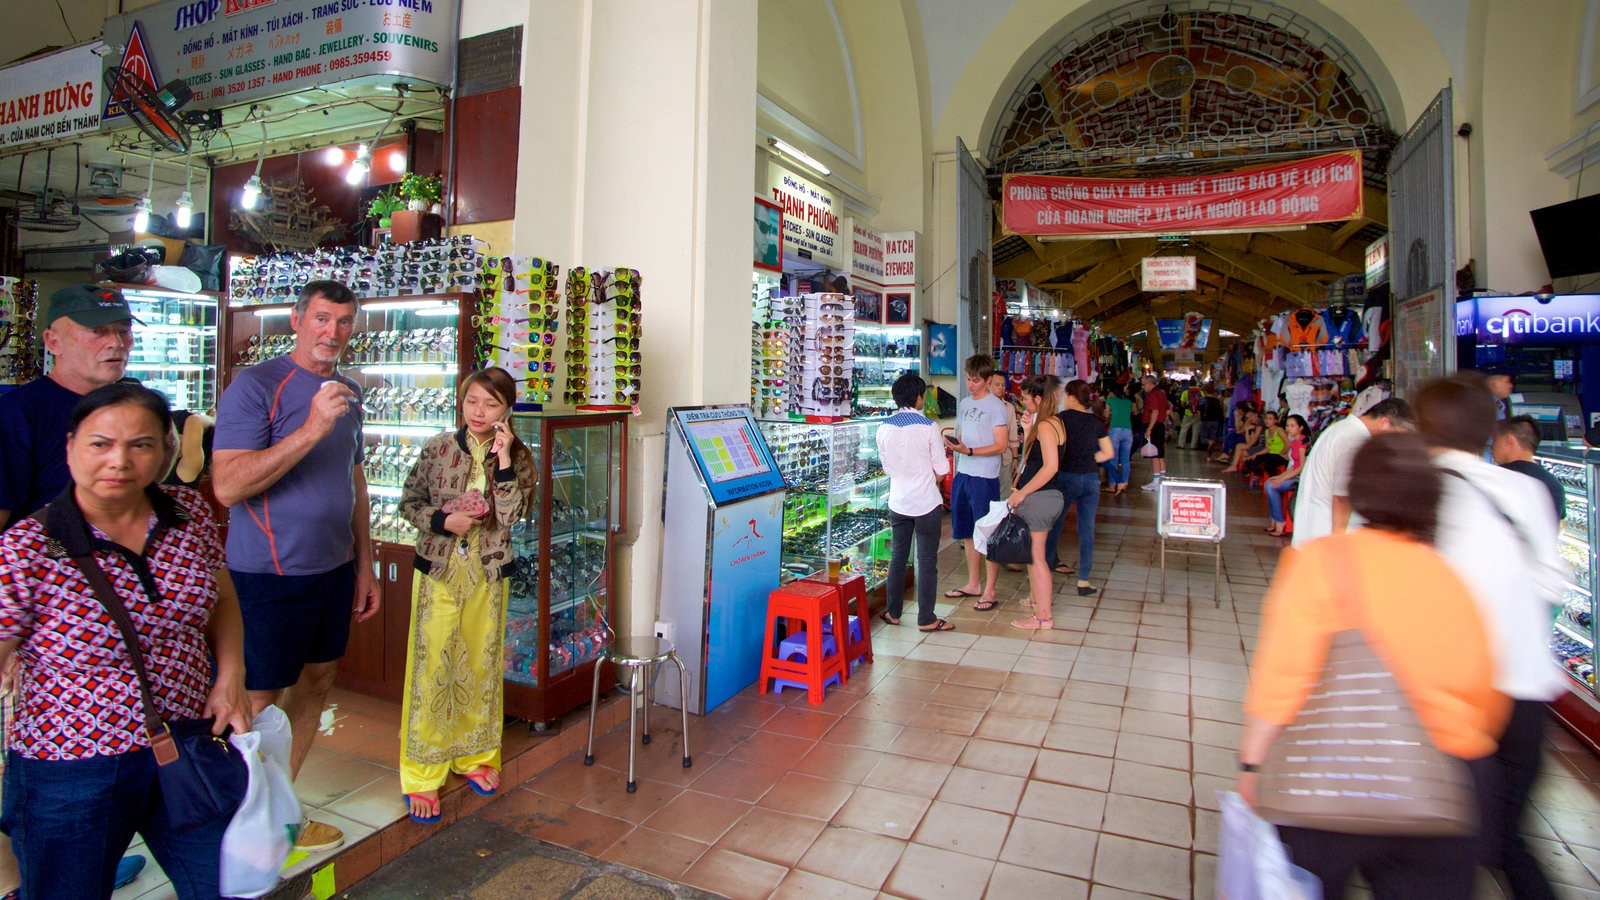 Ben Thanh Market featuring shopping, interior views and markets